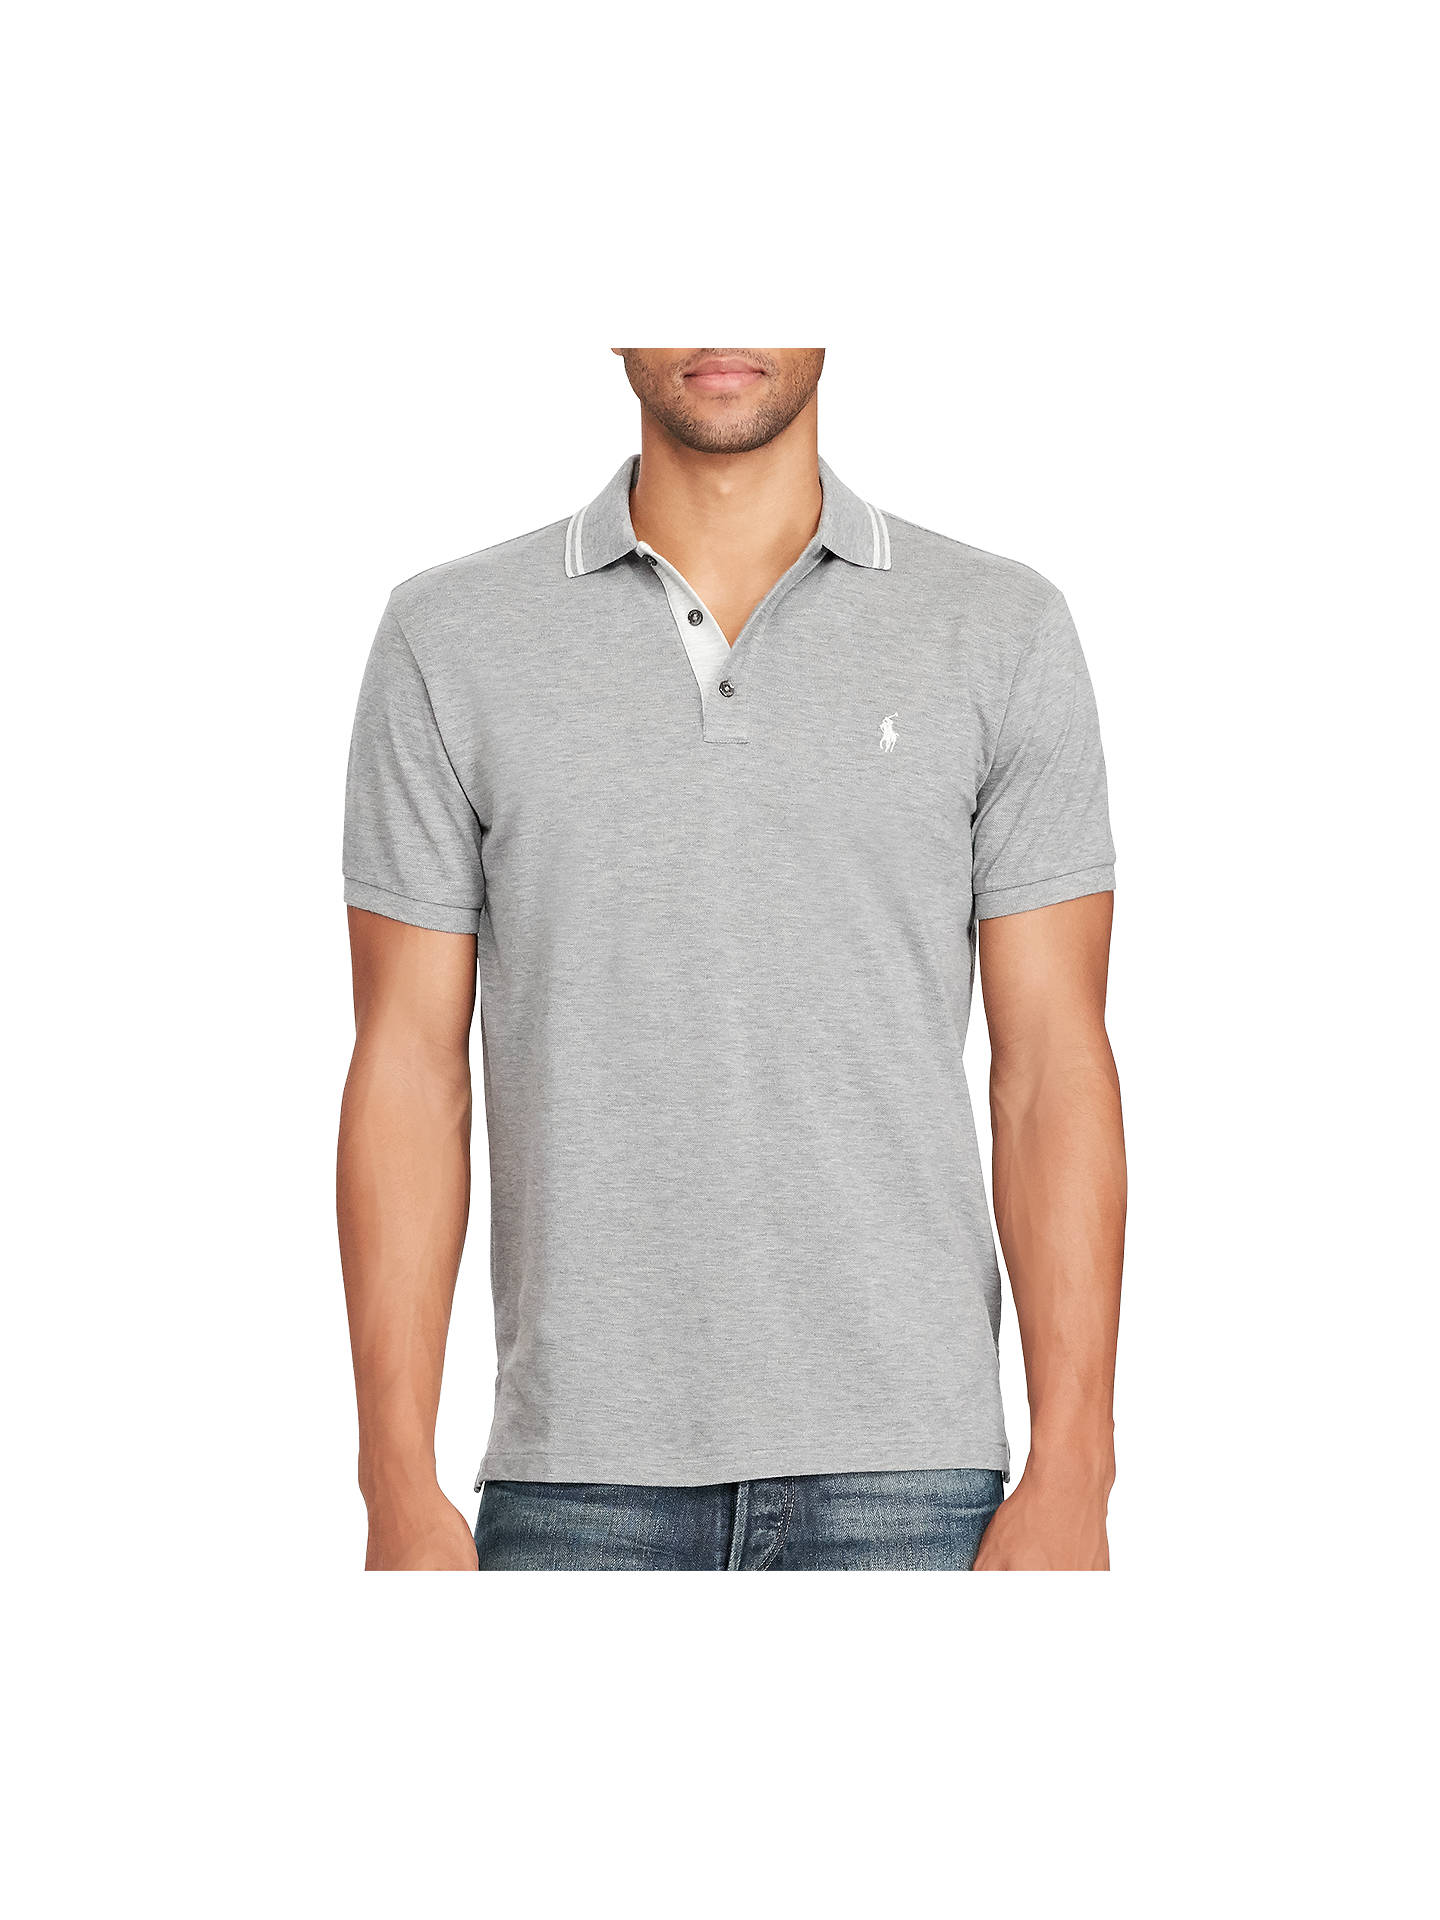 8d374190d Polo Ralph Lauren Custom-Fit Cotton Mesh Polo Shirt at John Lewis ...